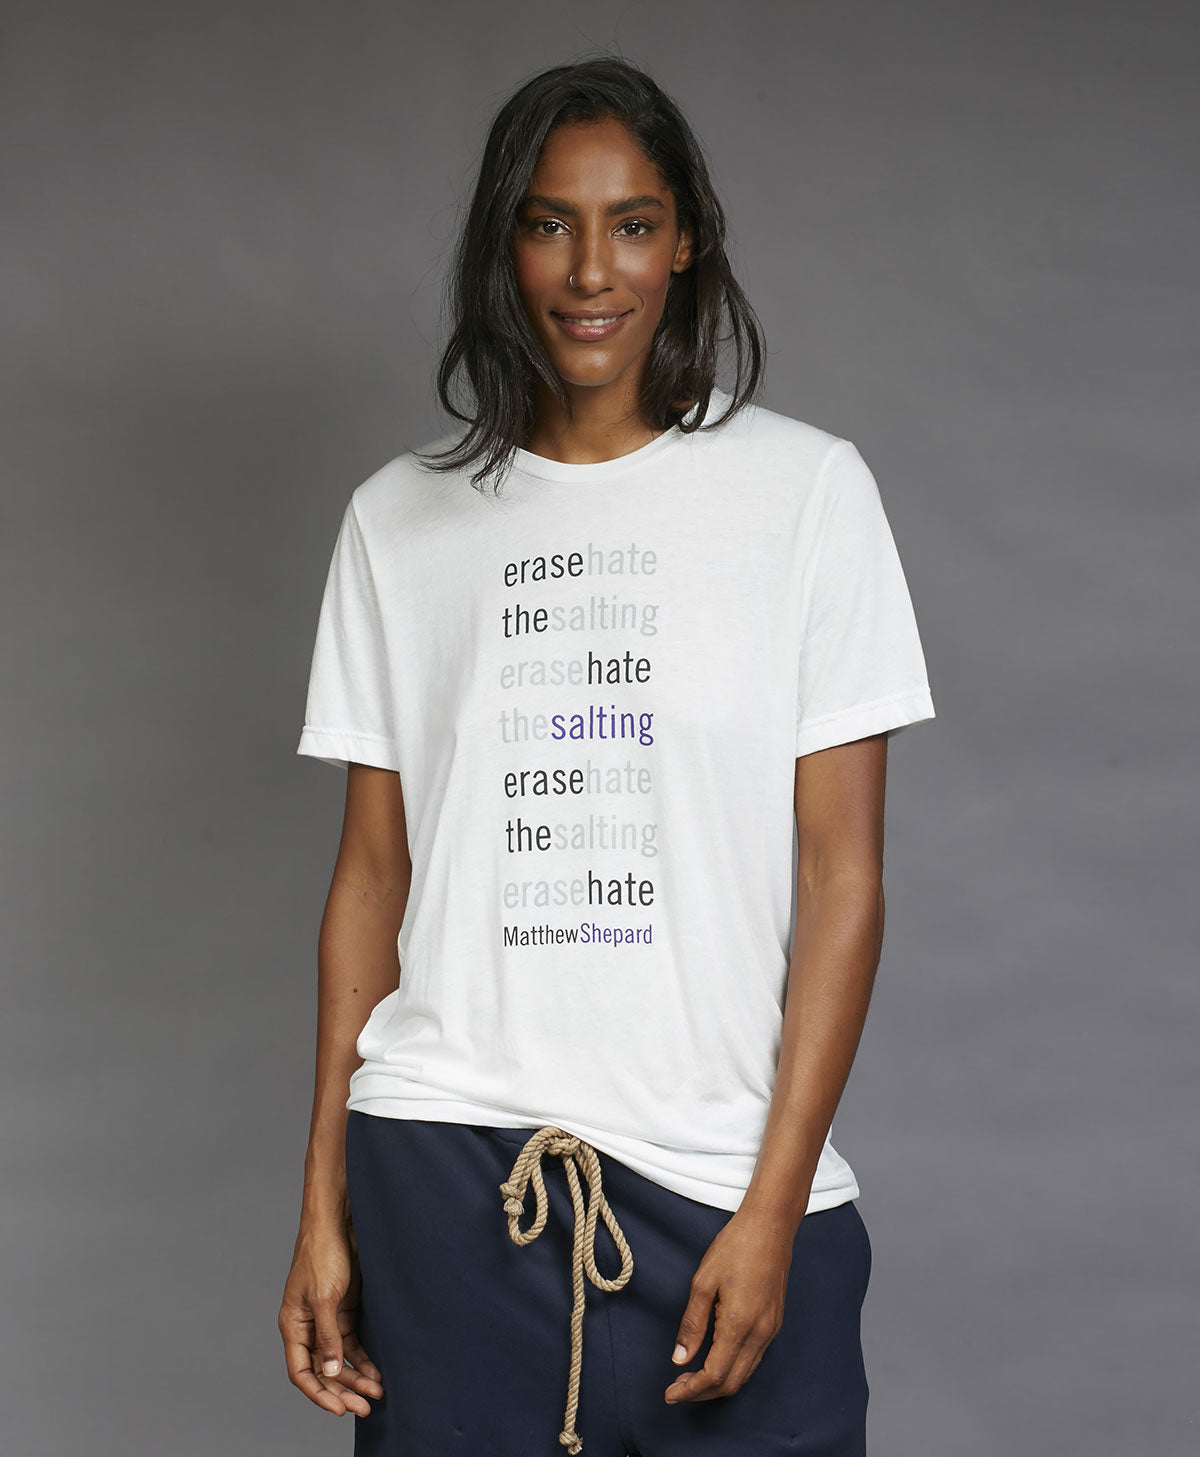 matthew shepard | erase hate t-shirt